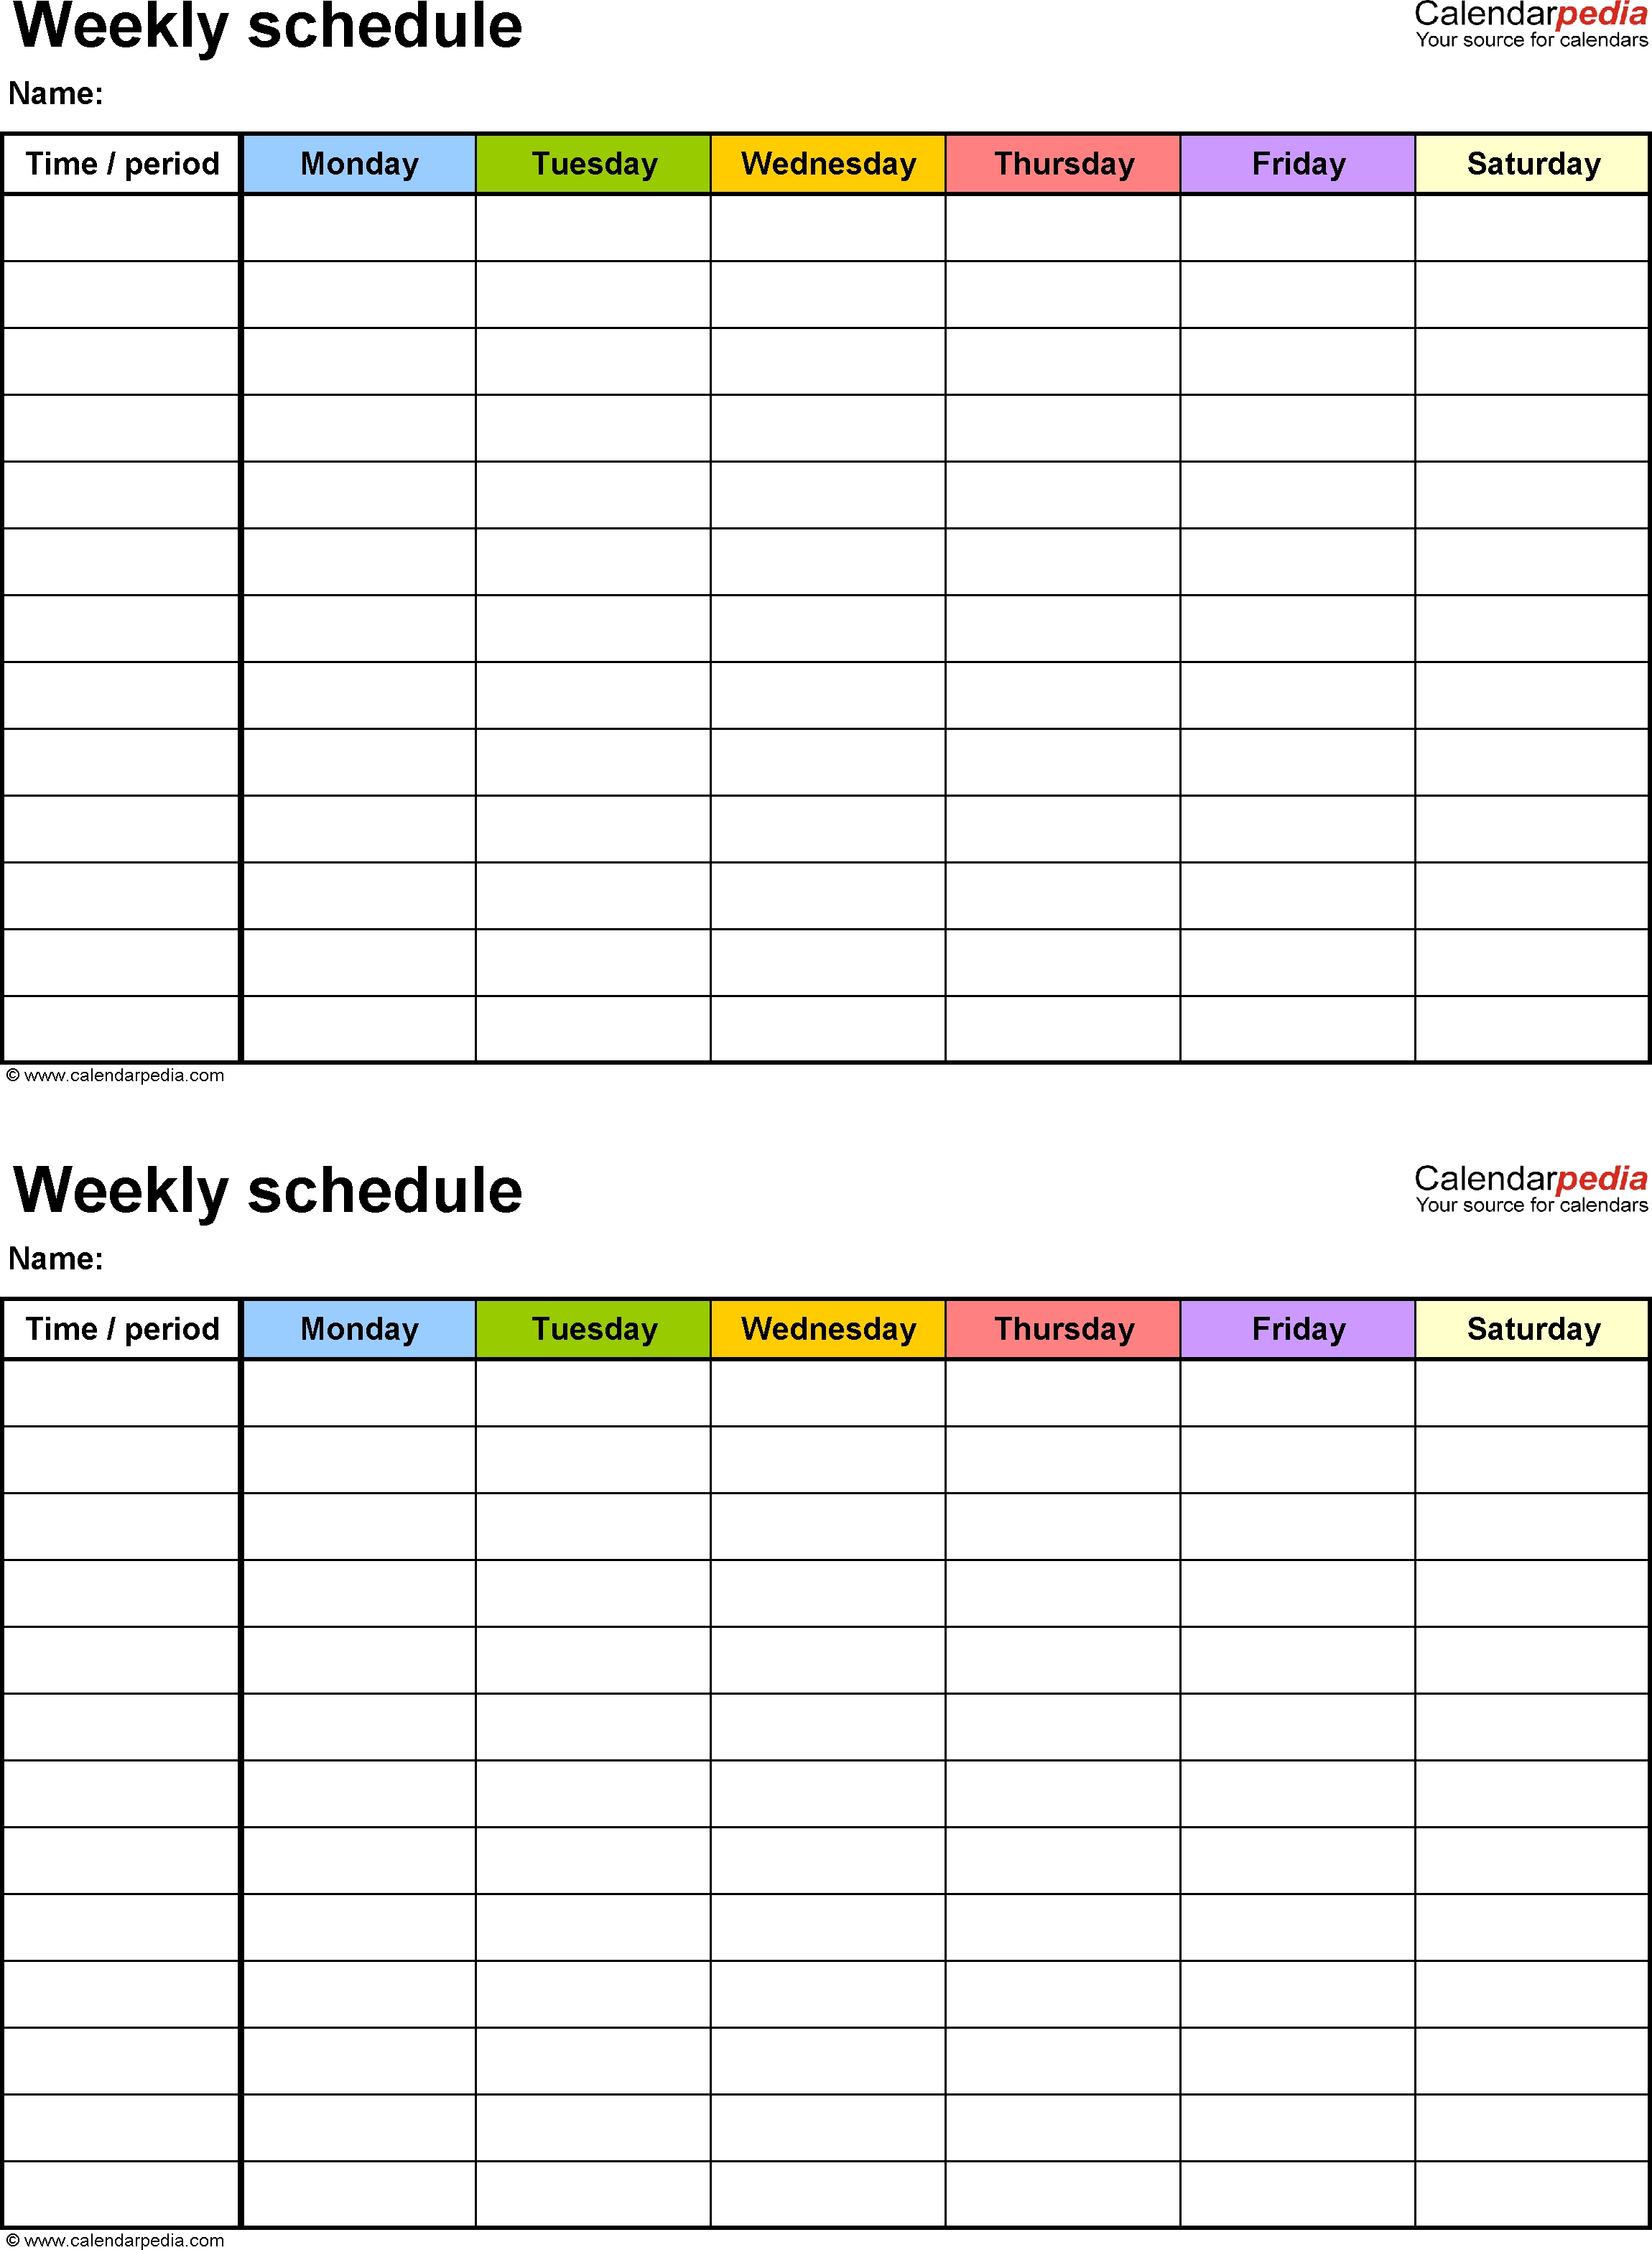 Free Weekly Schedule Templates For Excel - 18 Templates with Weekly Schedule Template With Times